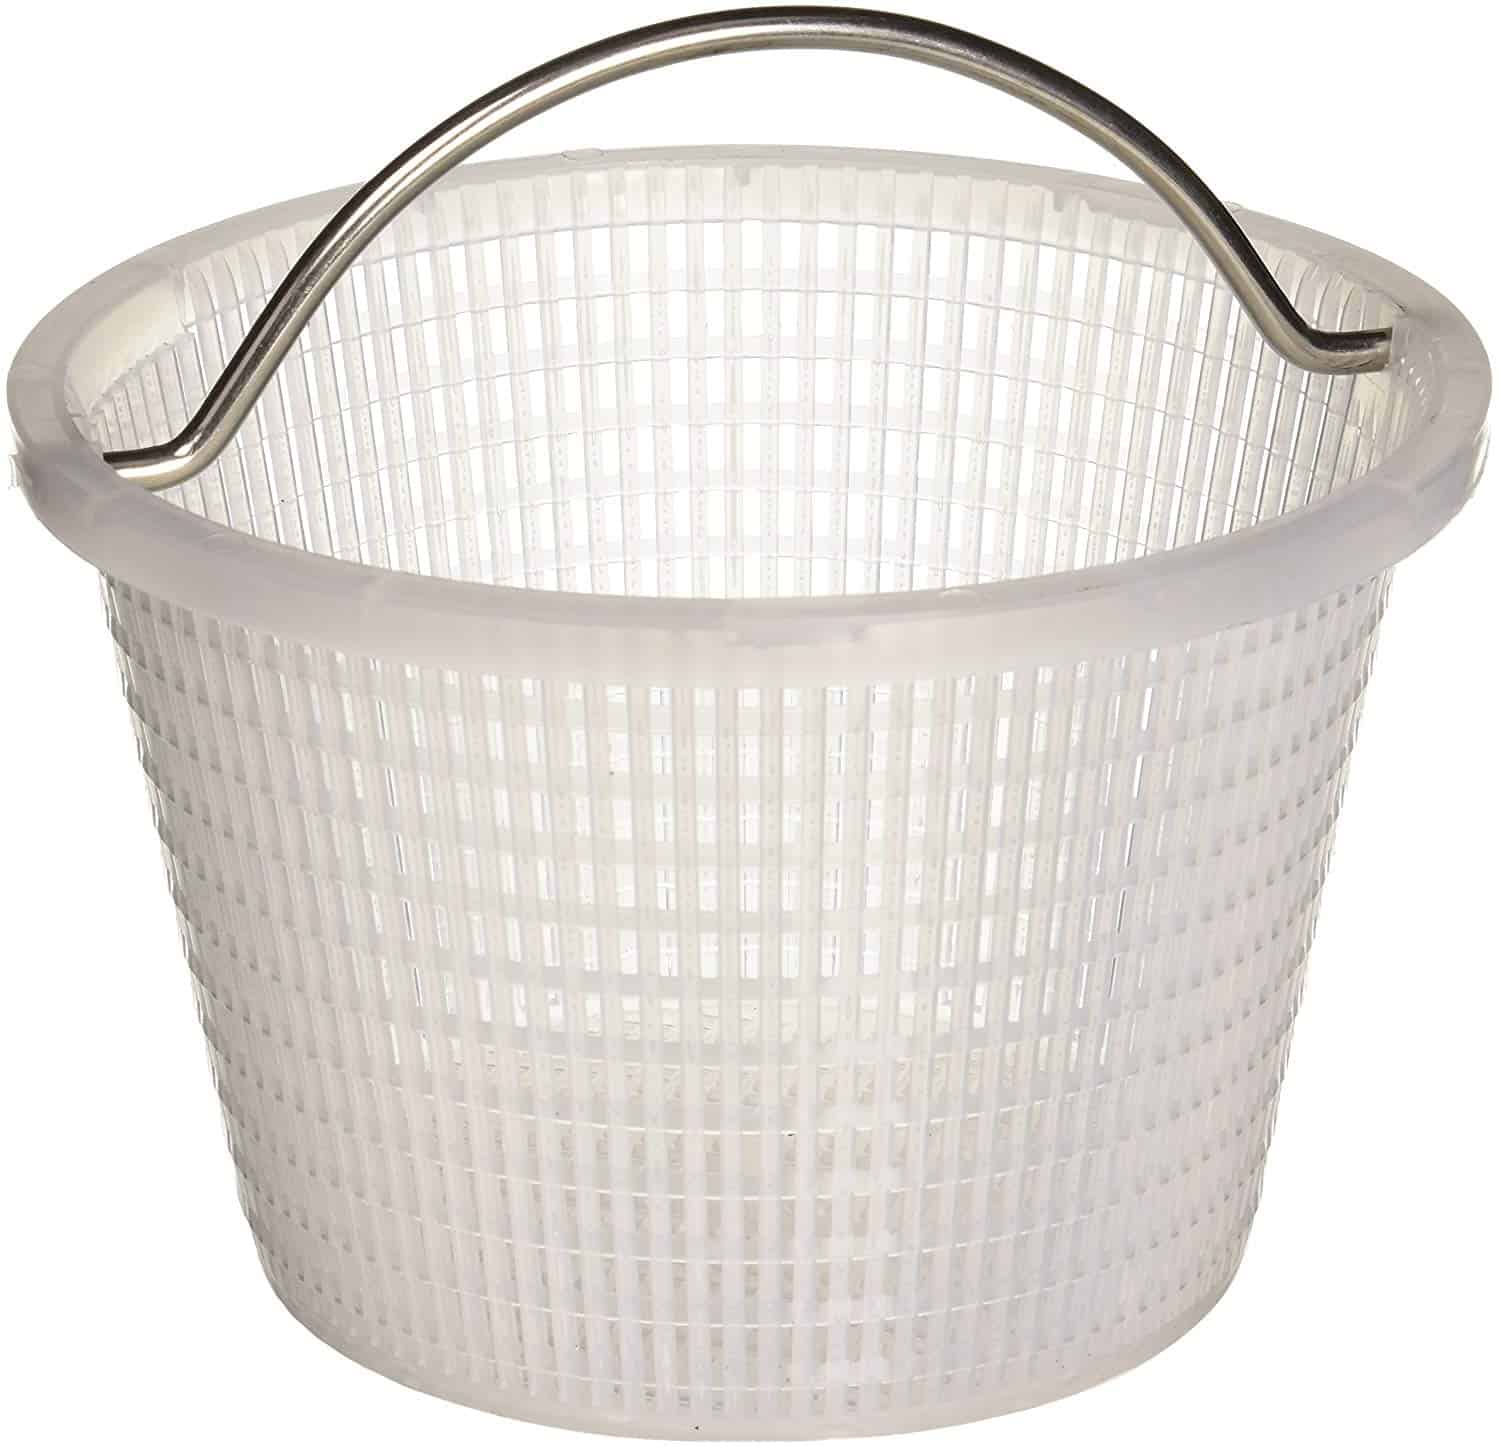 pool filter basket